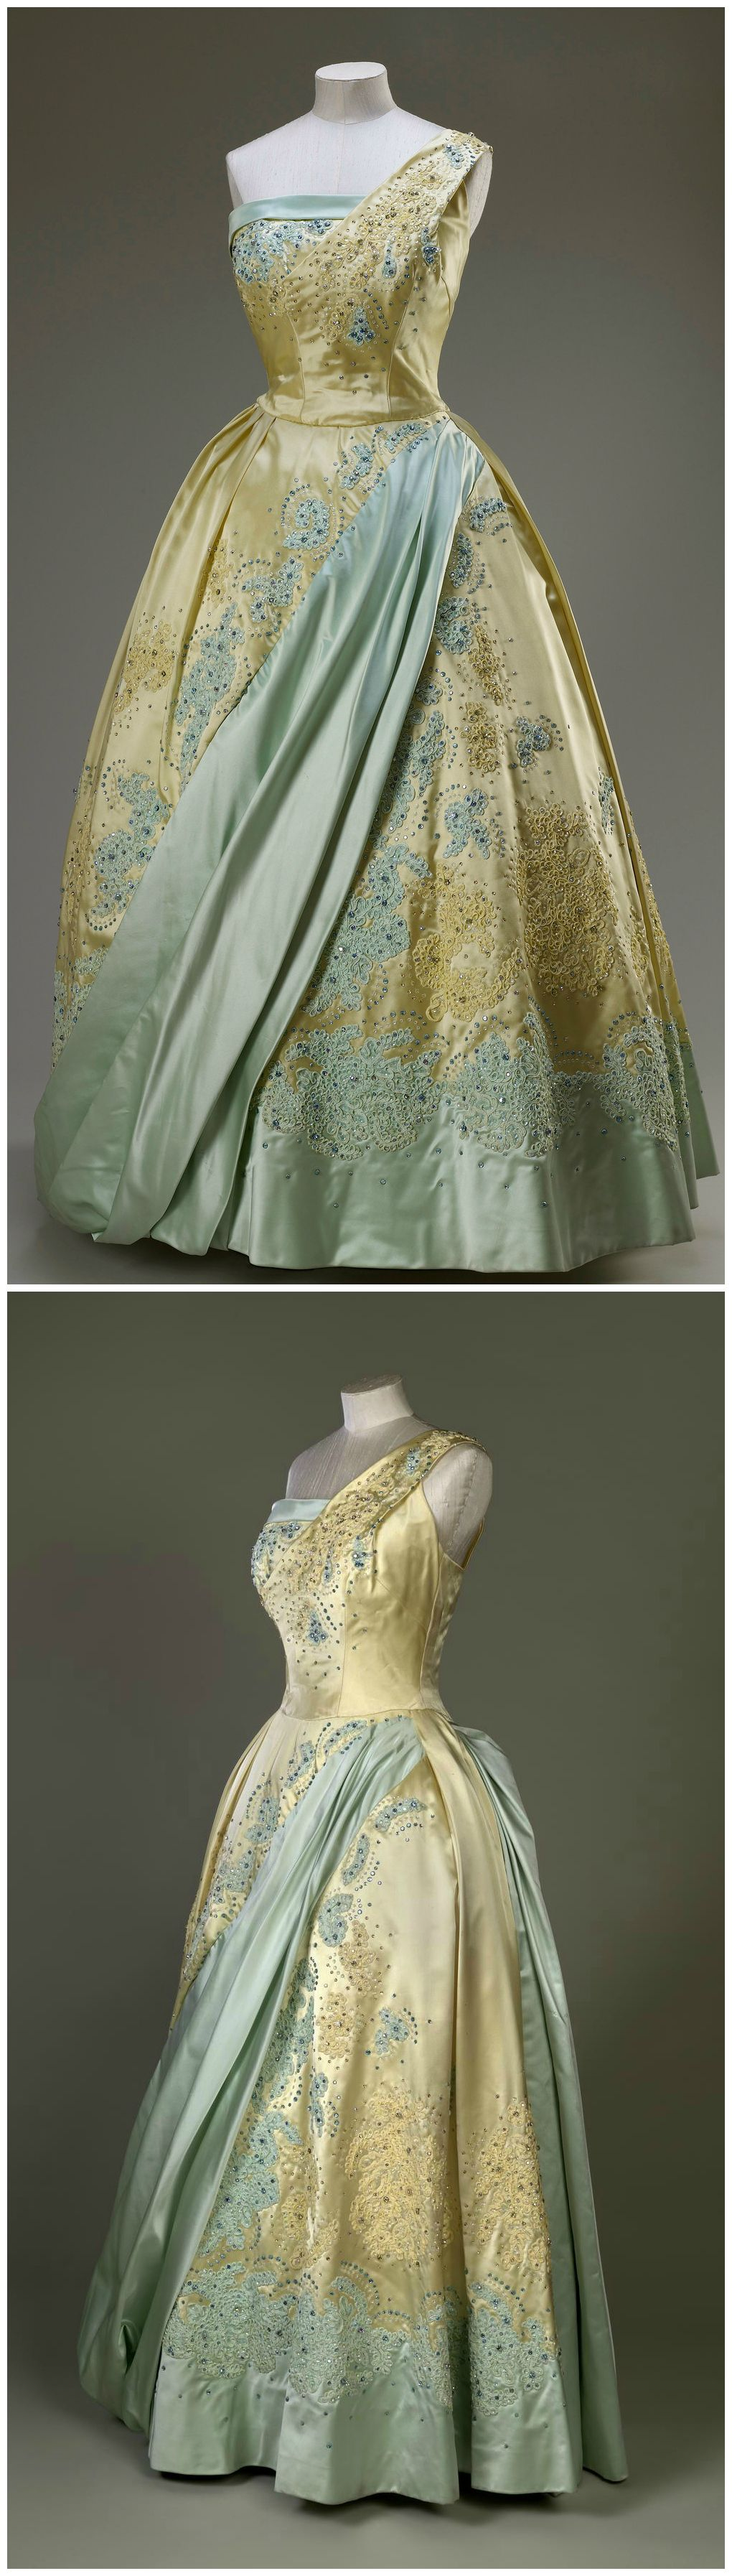 Evening Gown By Sir Norman Hartnell Worn By H M Queen Elizabeth Ii On A State Visit To The Netherlands In Historical Dresses Vintage Gowns Historical Gowns [ 3588 x 1020 Pixel ]